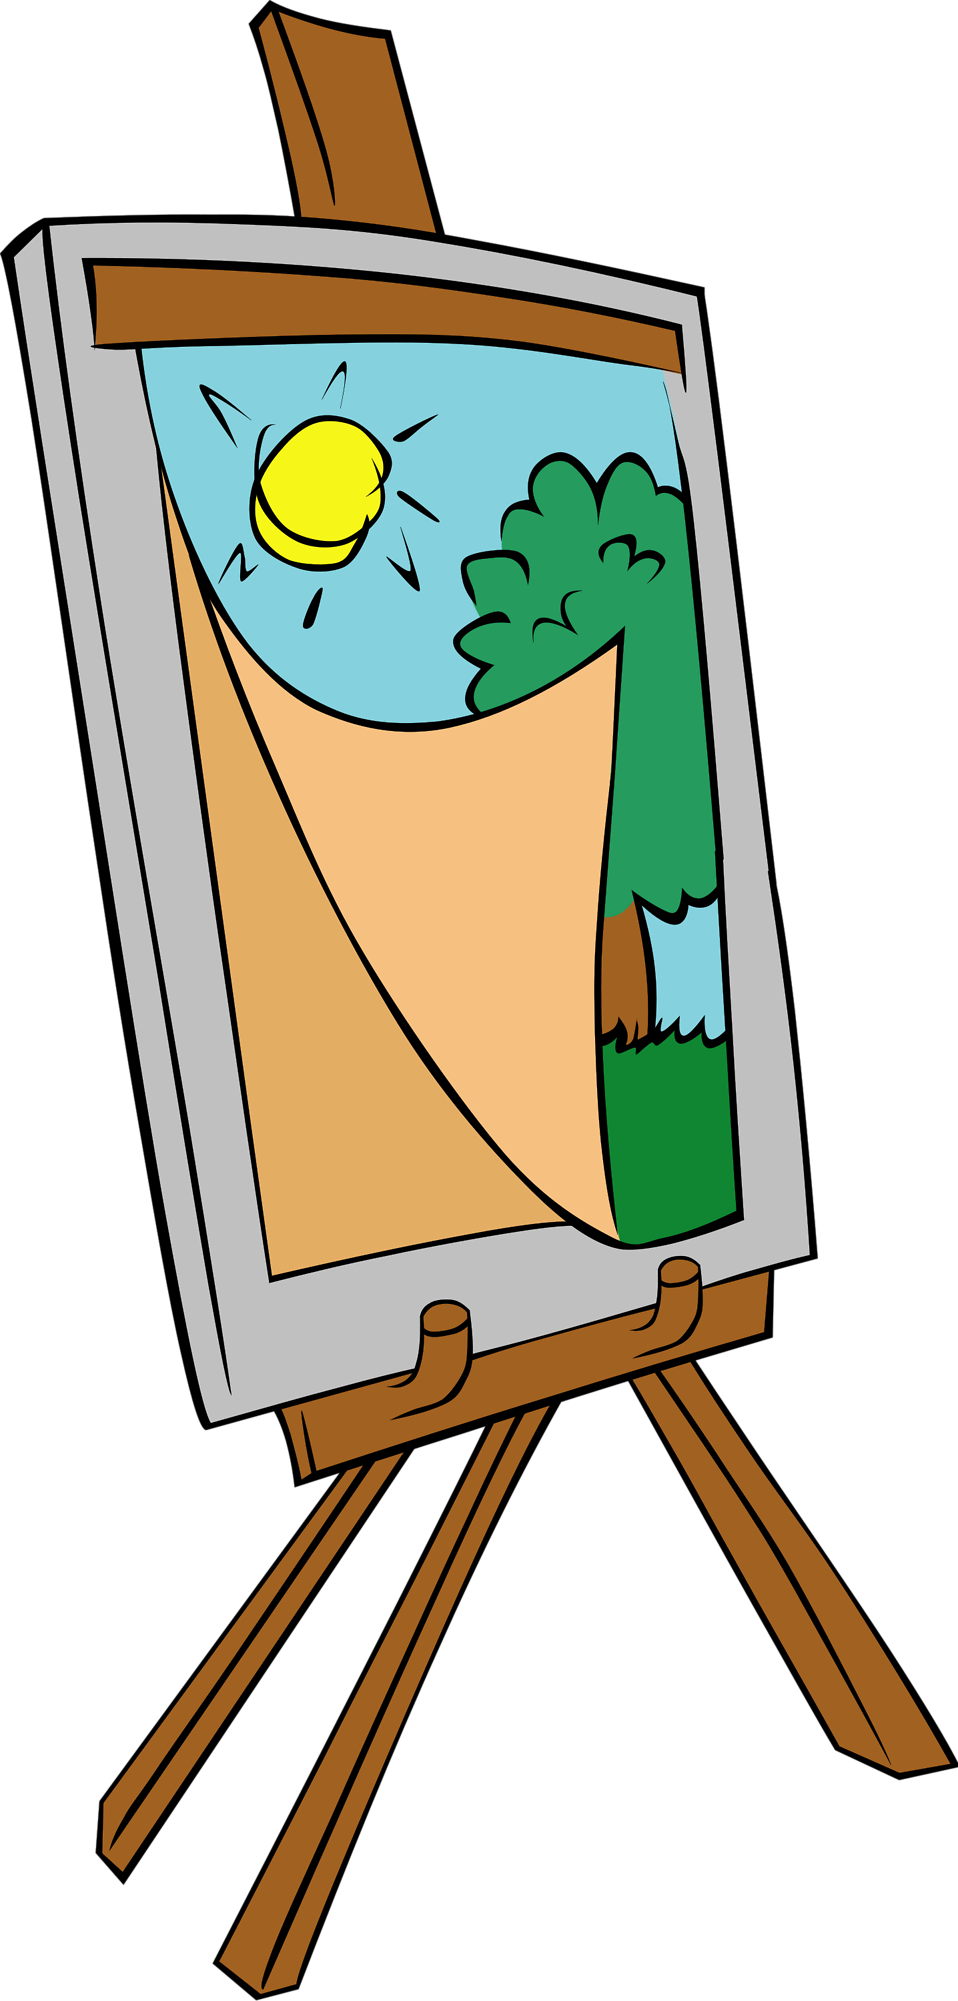 Illustration of a painting on an easel with a transparent background.